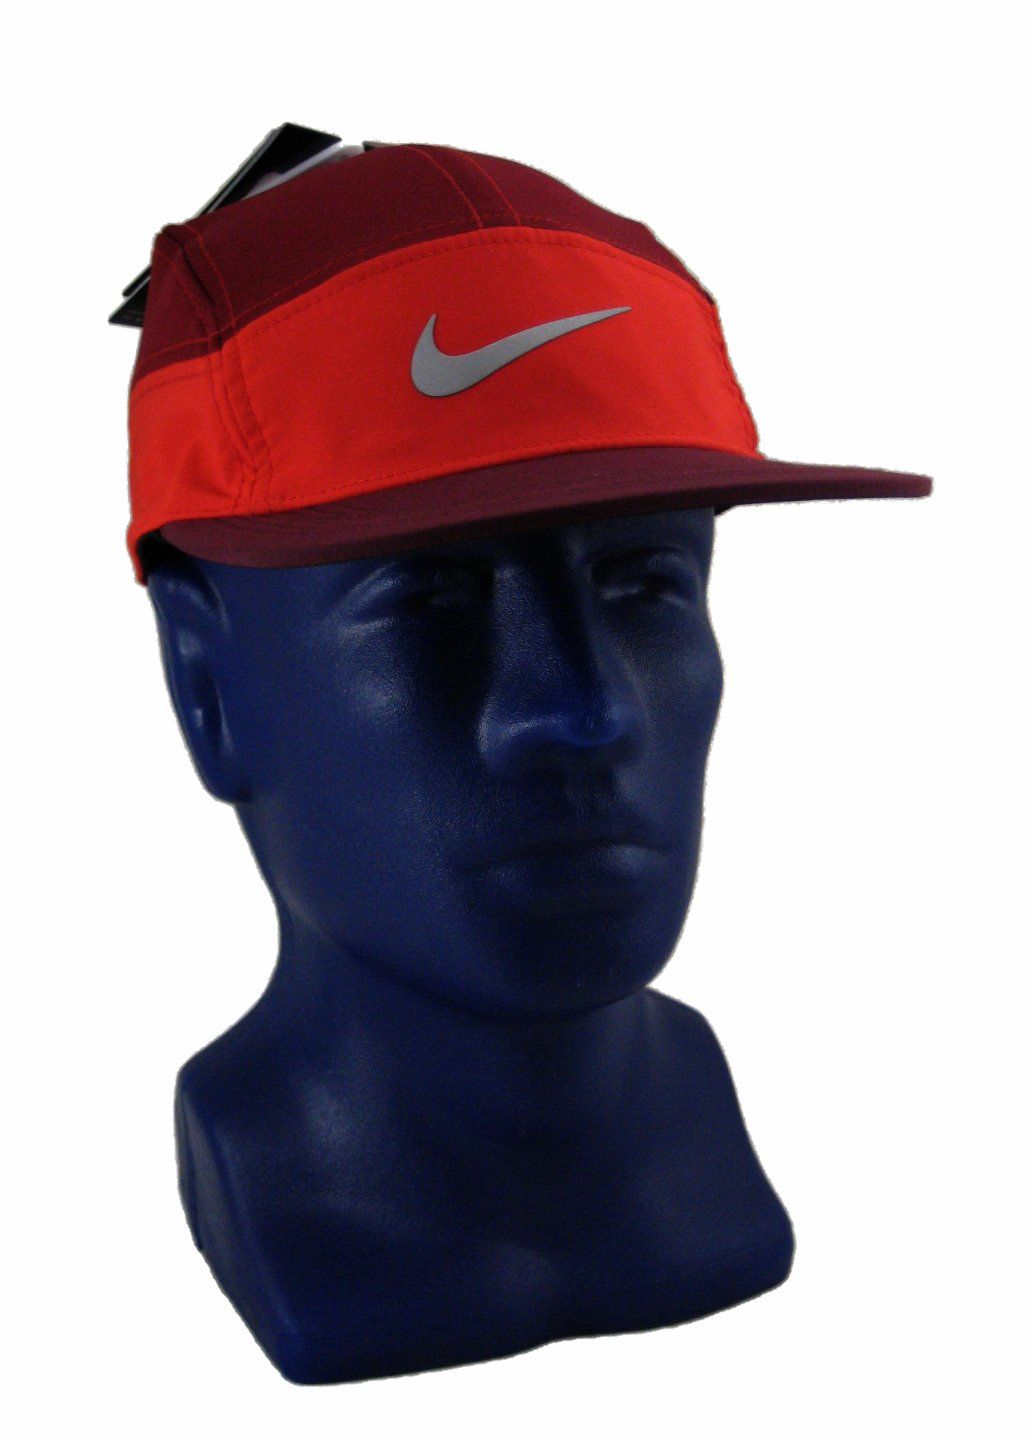 8313681804acd Unisex Nike AW84 Zip Adjustable Running Hat 778363-658 Red Maroon. Dri Fit